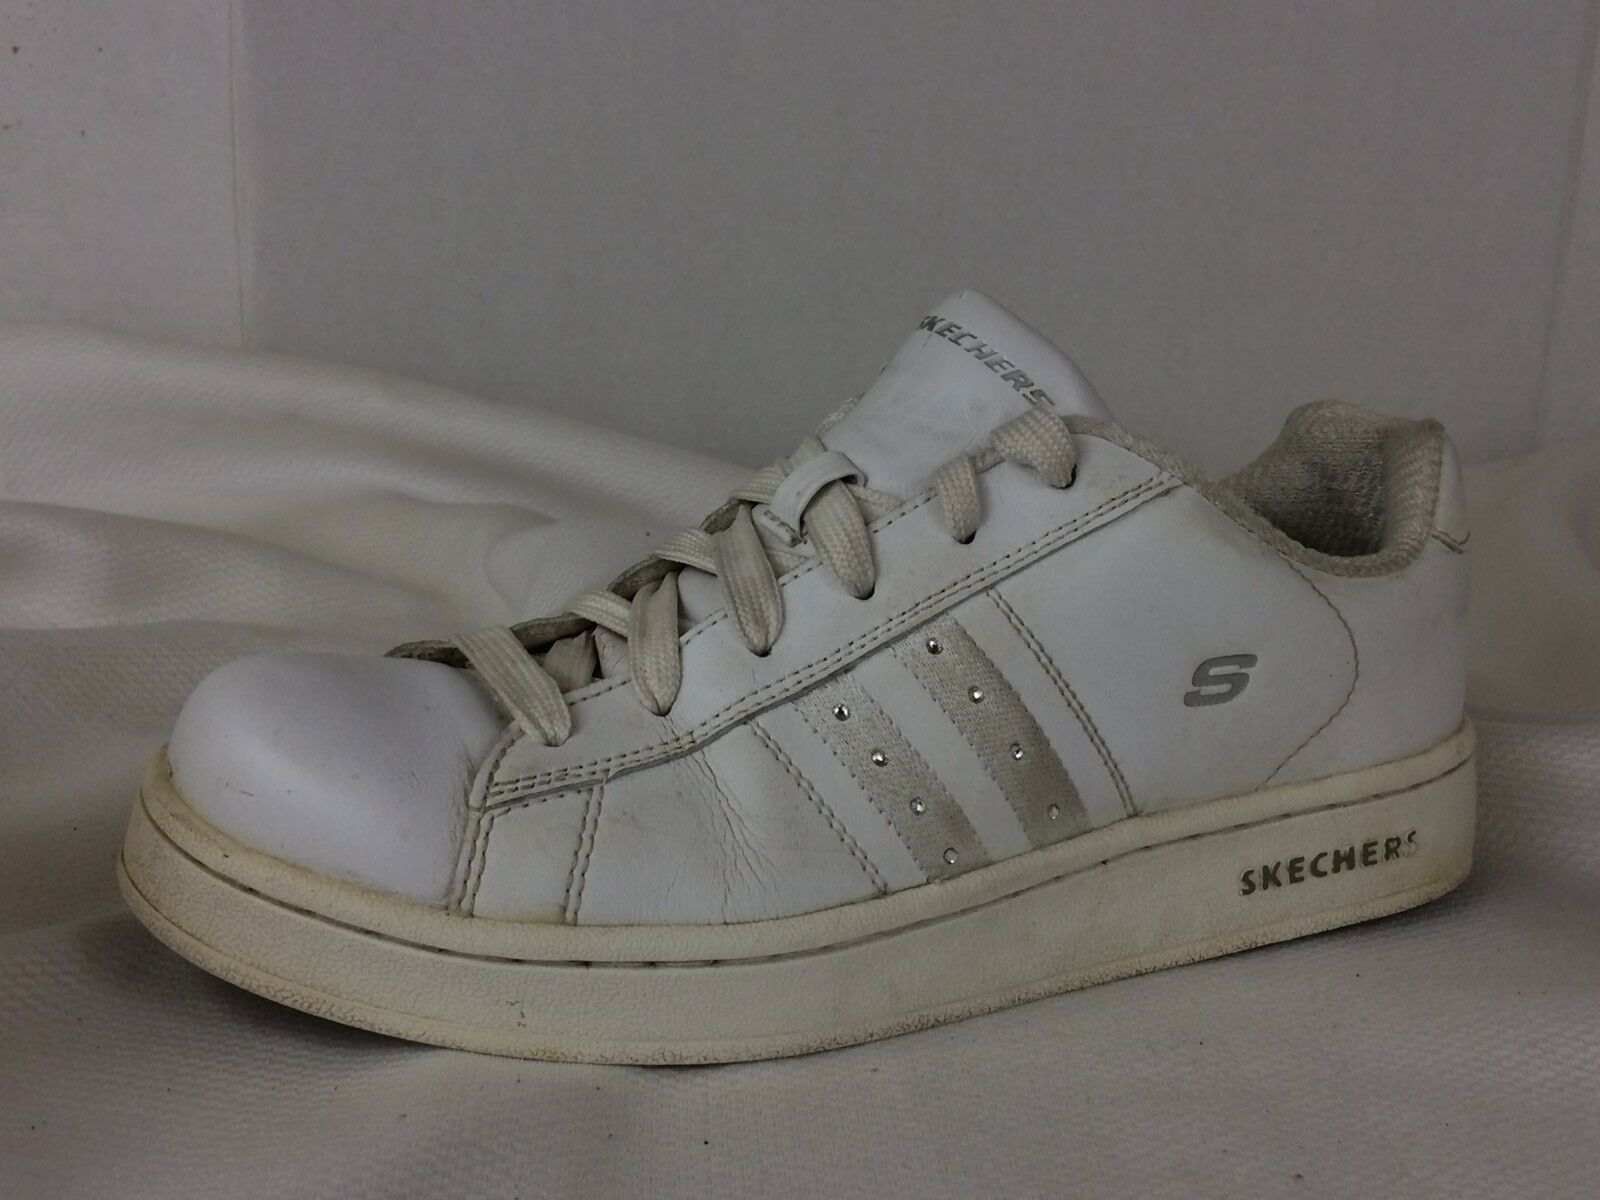 Skechers 21707 Classic Sneaker White Casual Shoes Womens 9 M Leather Rhinestones